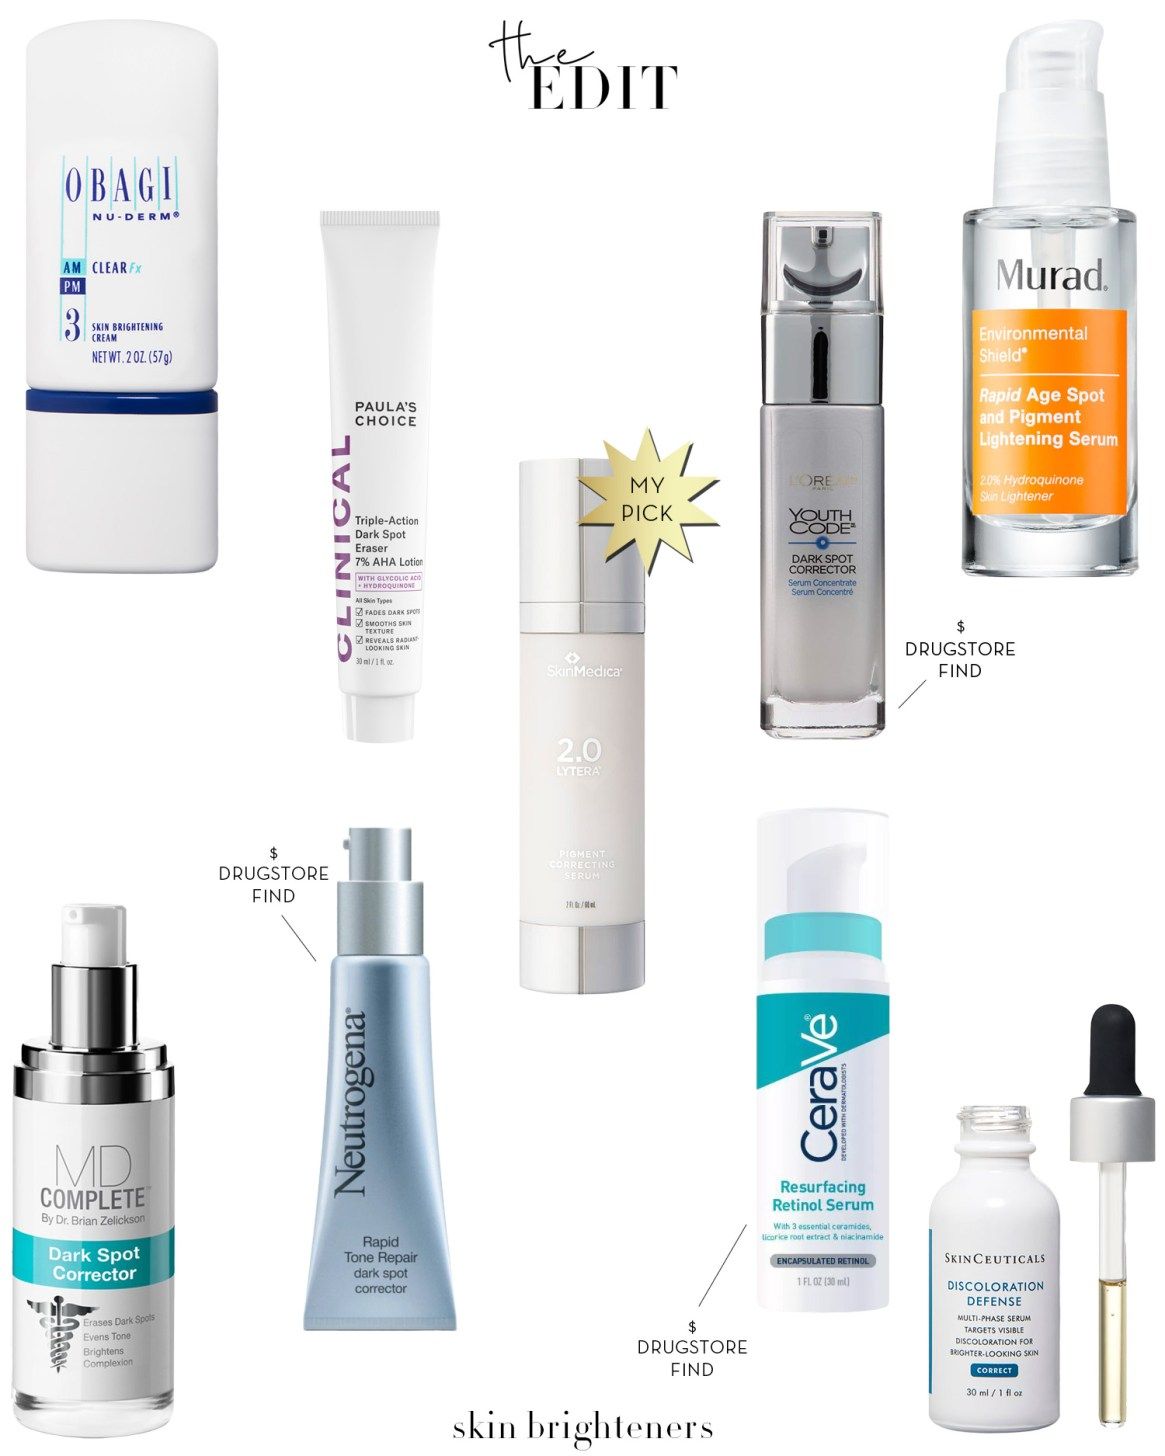 The Edit- Skin Brighteners